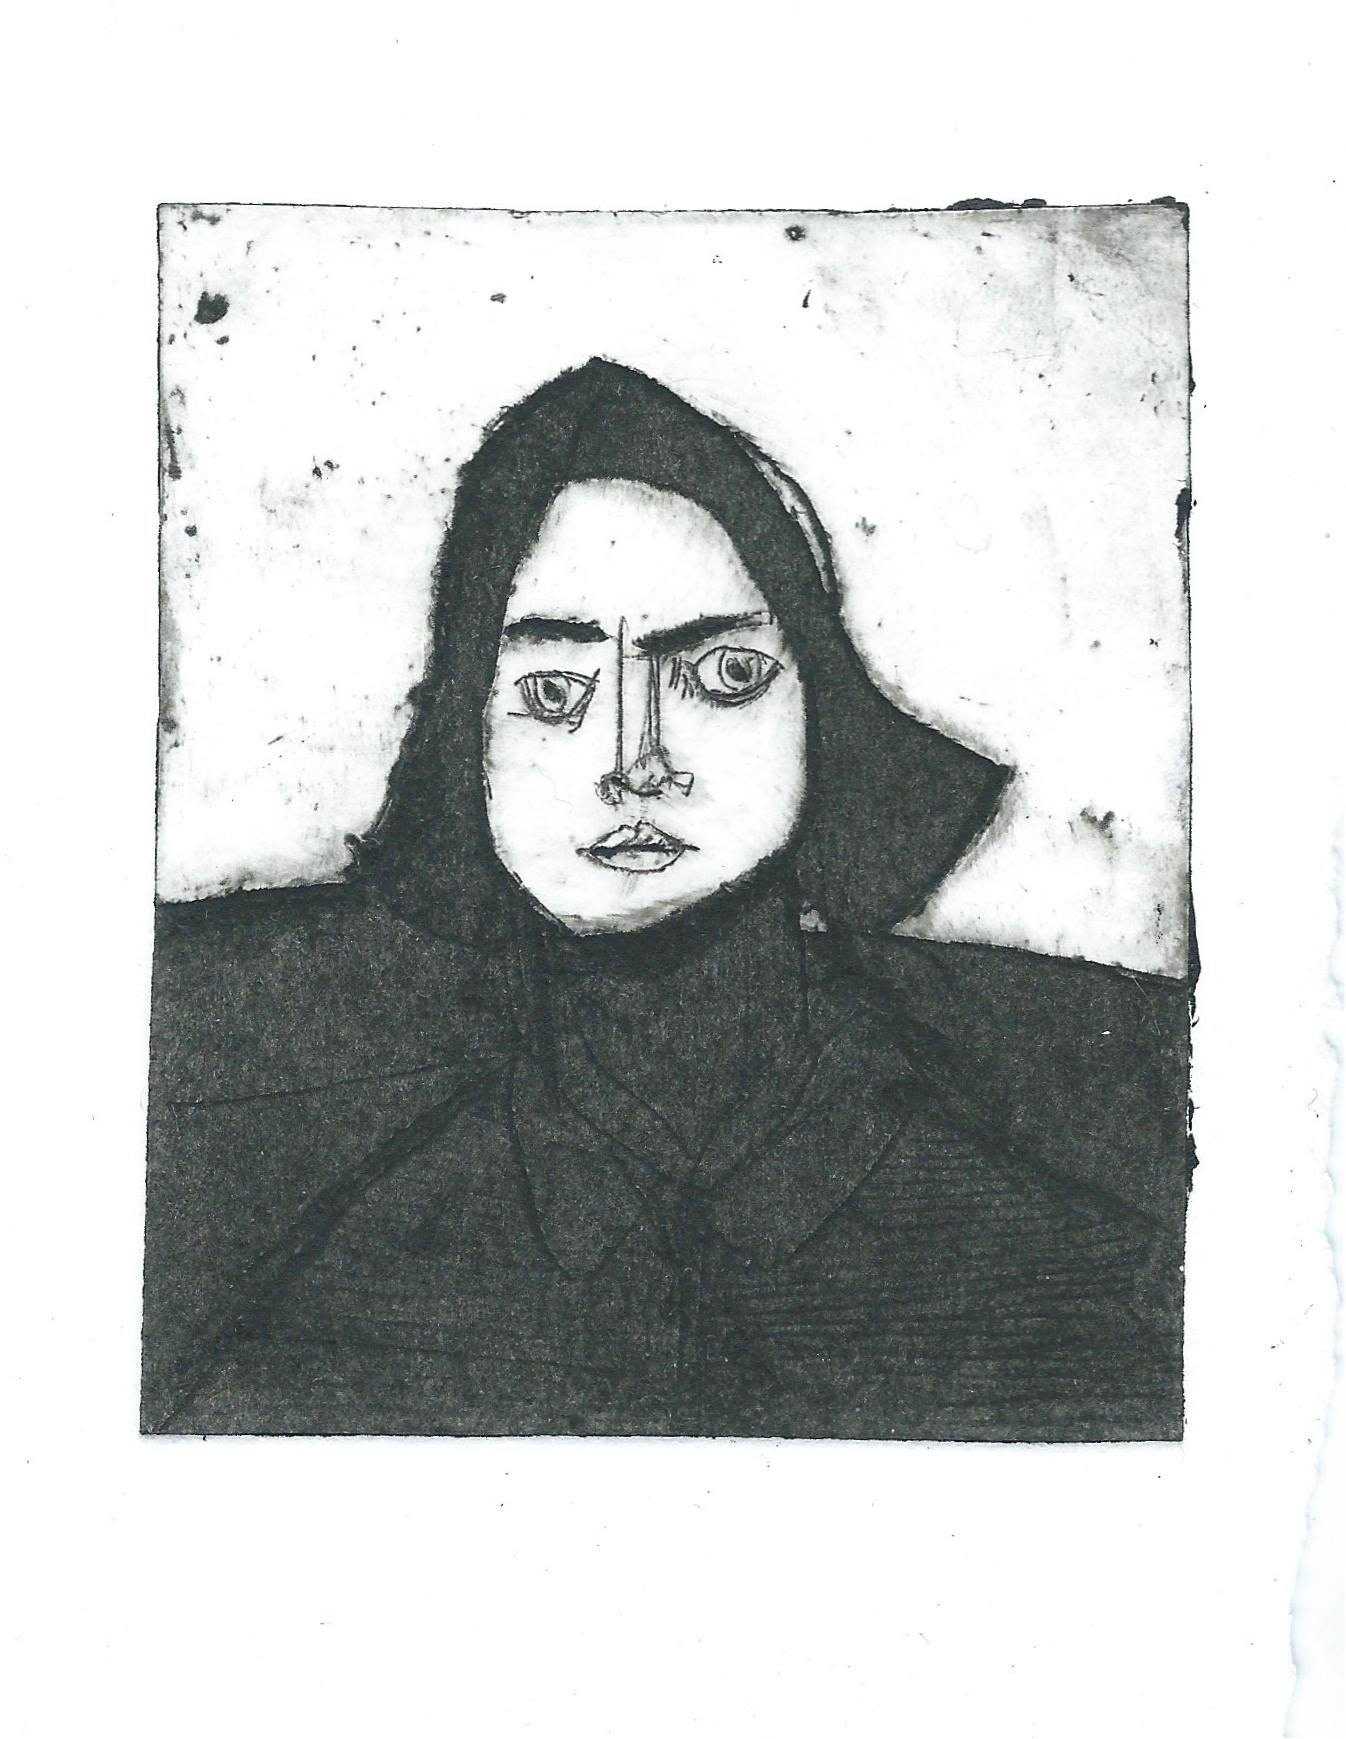 """<span class=""""link fancybox-details-link""""><a href=""""/exhibitions/17/works/image_standalone759/"""">View Detail Page</a></span><p><strong>Charlotte Murdoch</strong></p><p>Untitled (Direct Stare)</p><p>drypoint, ed of 5</p><p>15 x 25cm</p><p>£260 framed</p><p>£210 unframed</p><p></p>"""